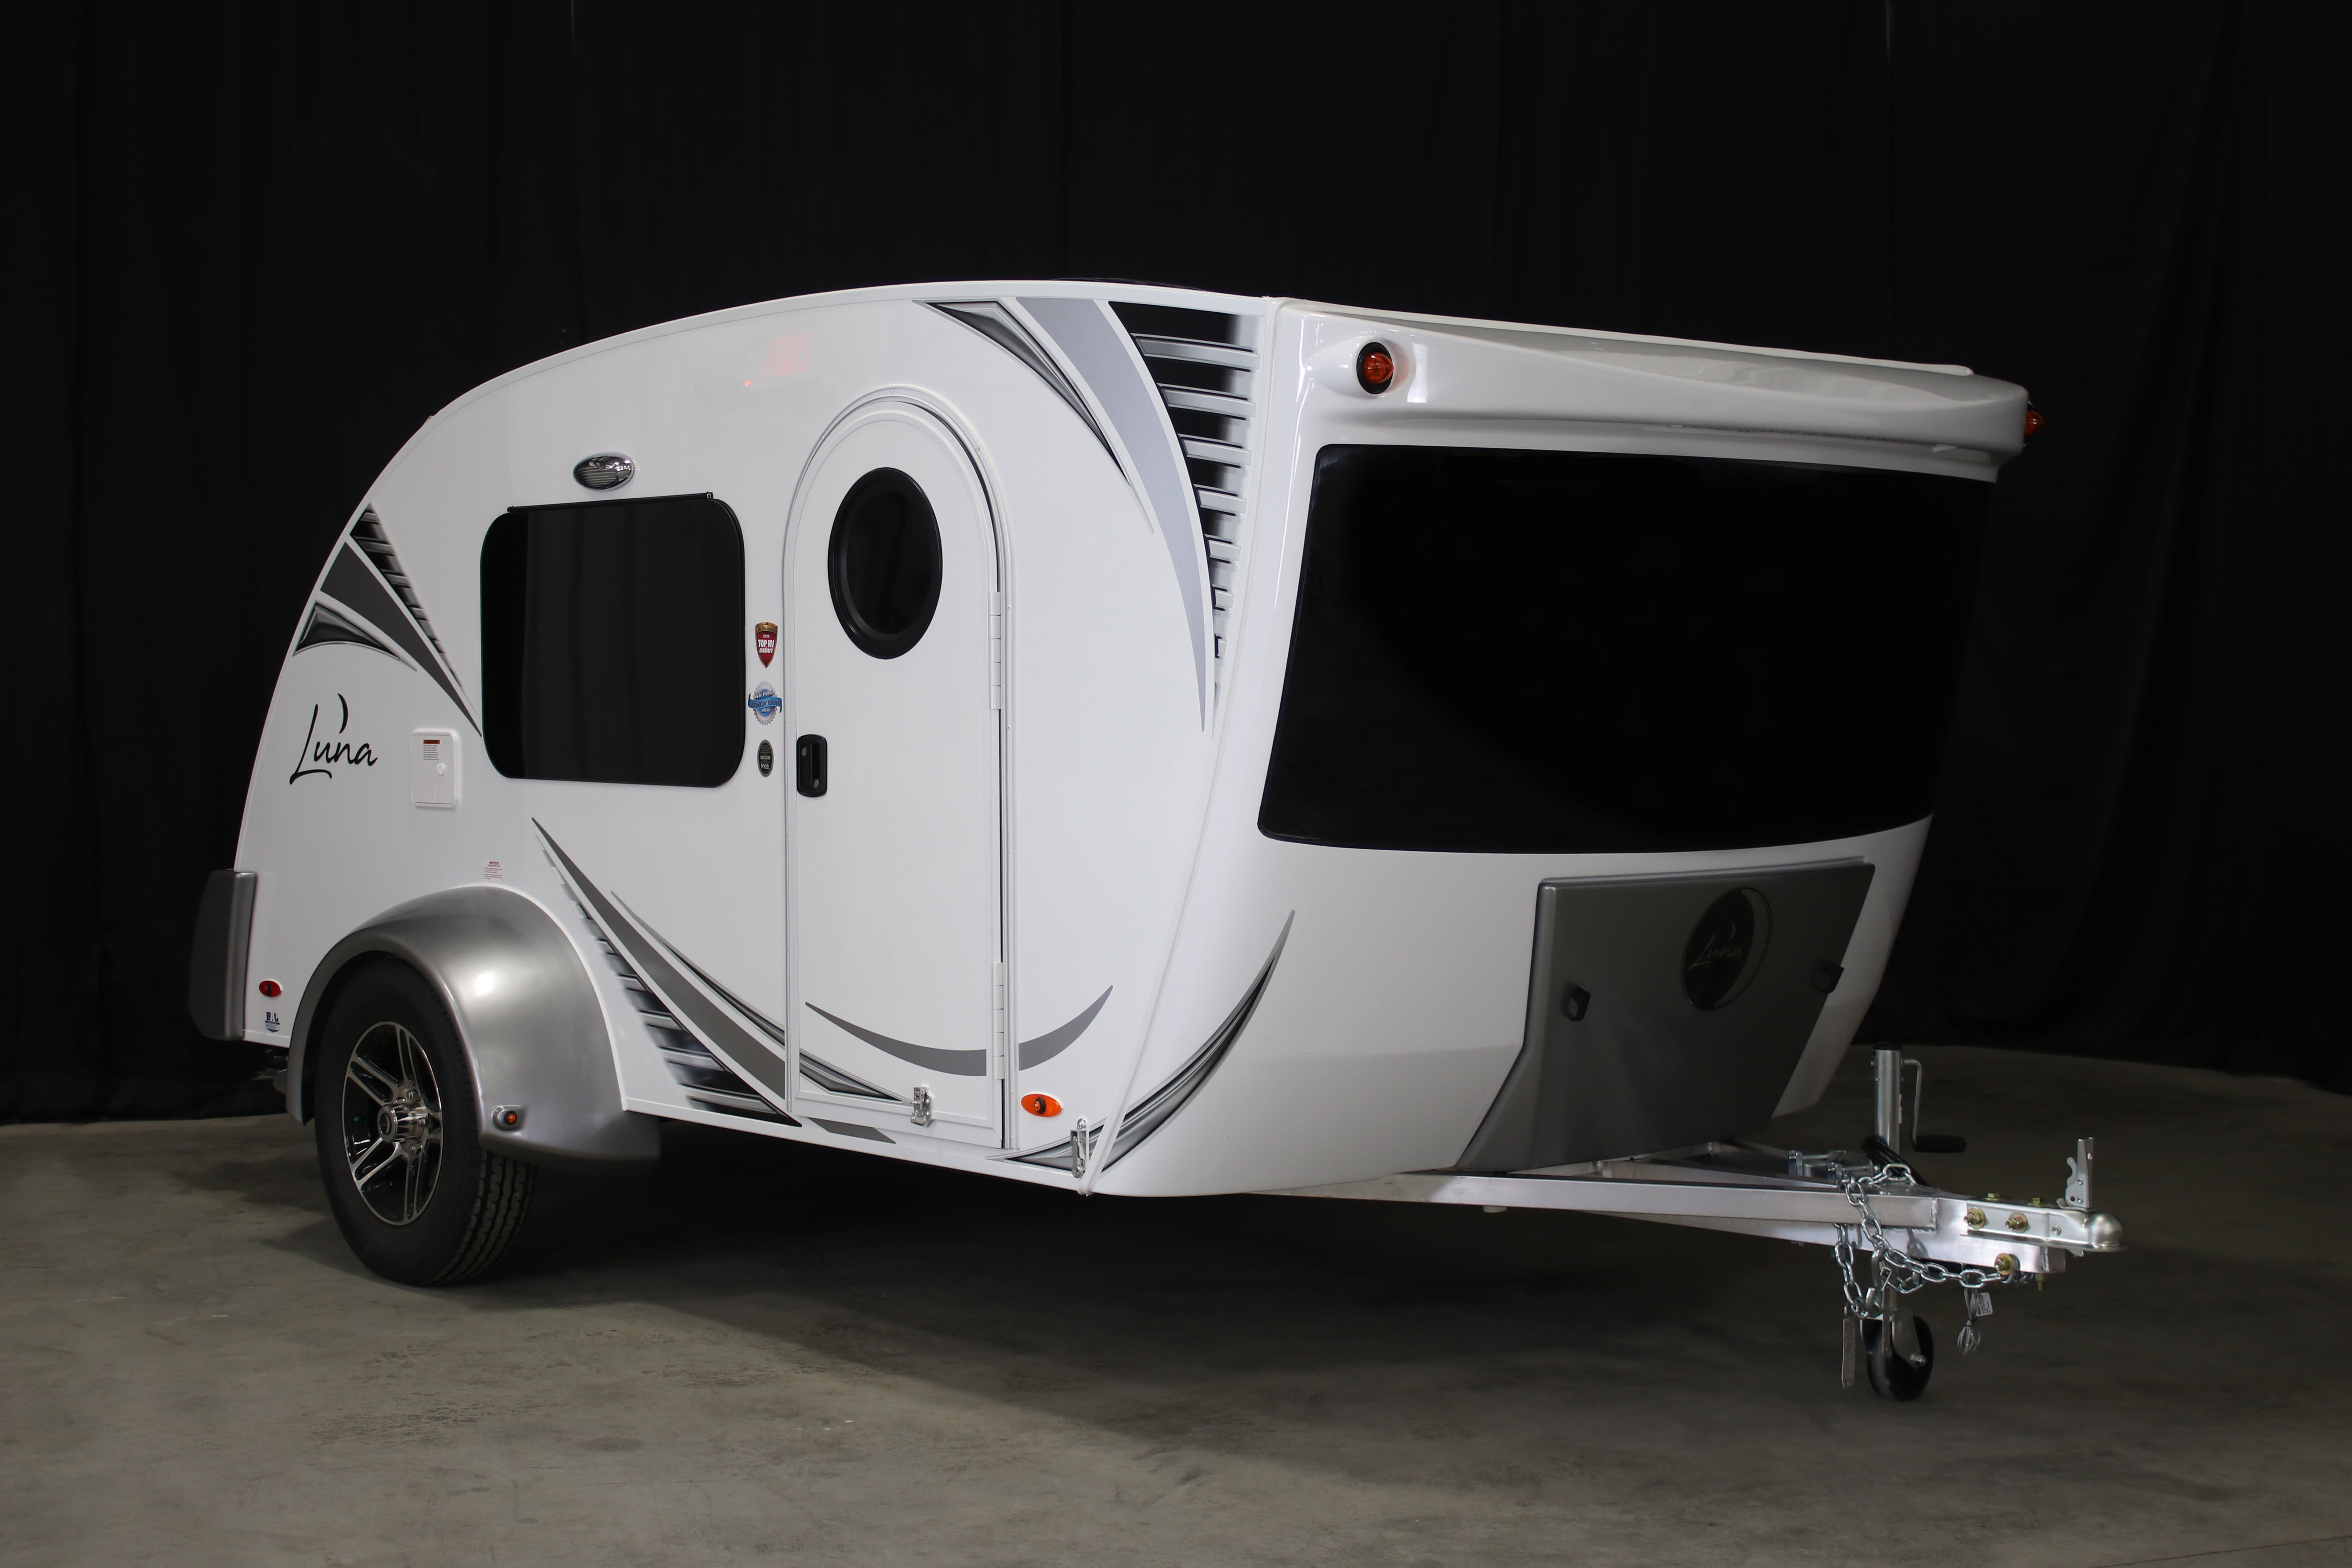 7 New Rv Models Taking Classic Summer Vehicle Into The Future Electrical System For A Class Motorhome Where Part Of